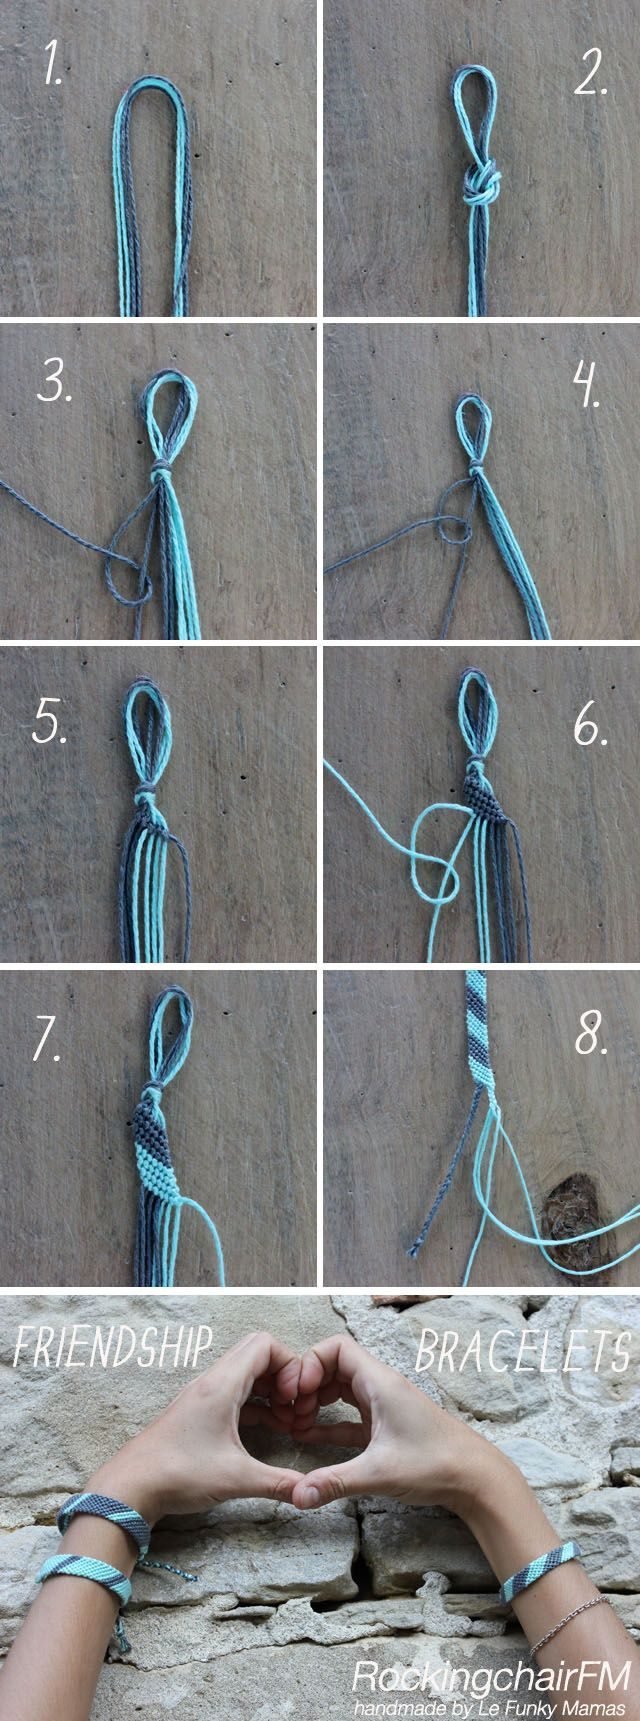 3498 Best Crafts Images On Pinterest Seed Beads And Tutorials Copper Electrical Wiring Stranded Wireedit The Friendship Bracelet